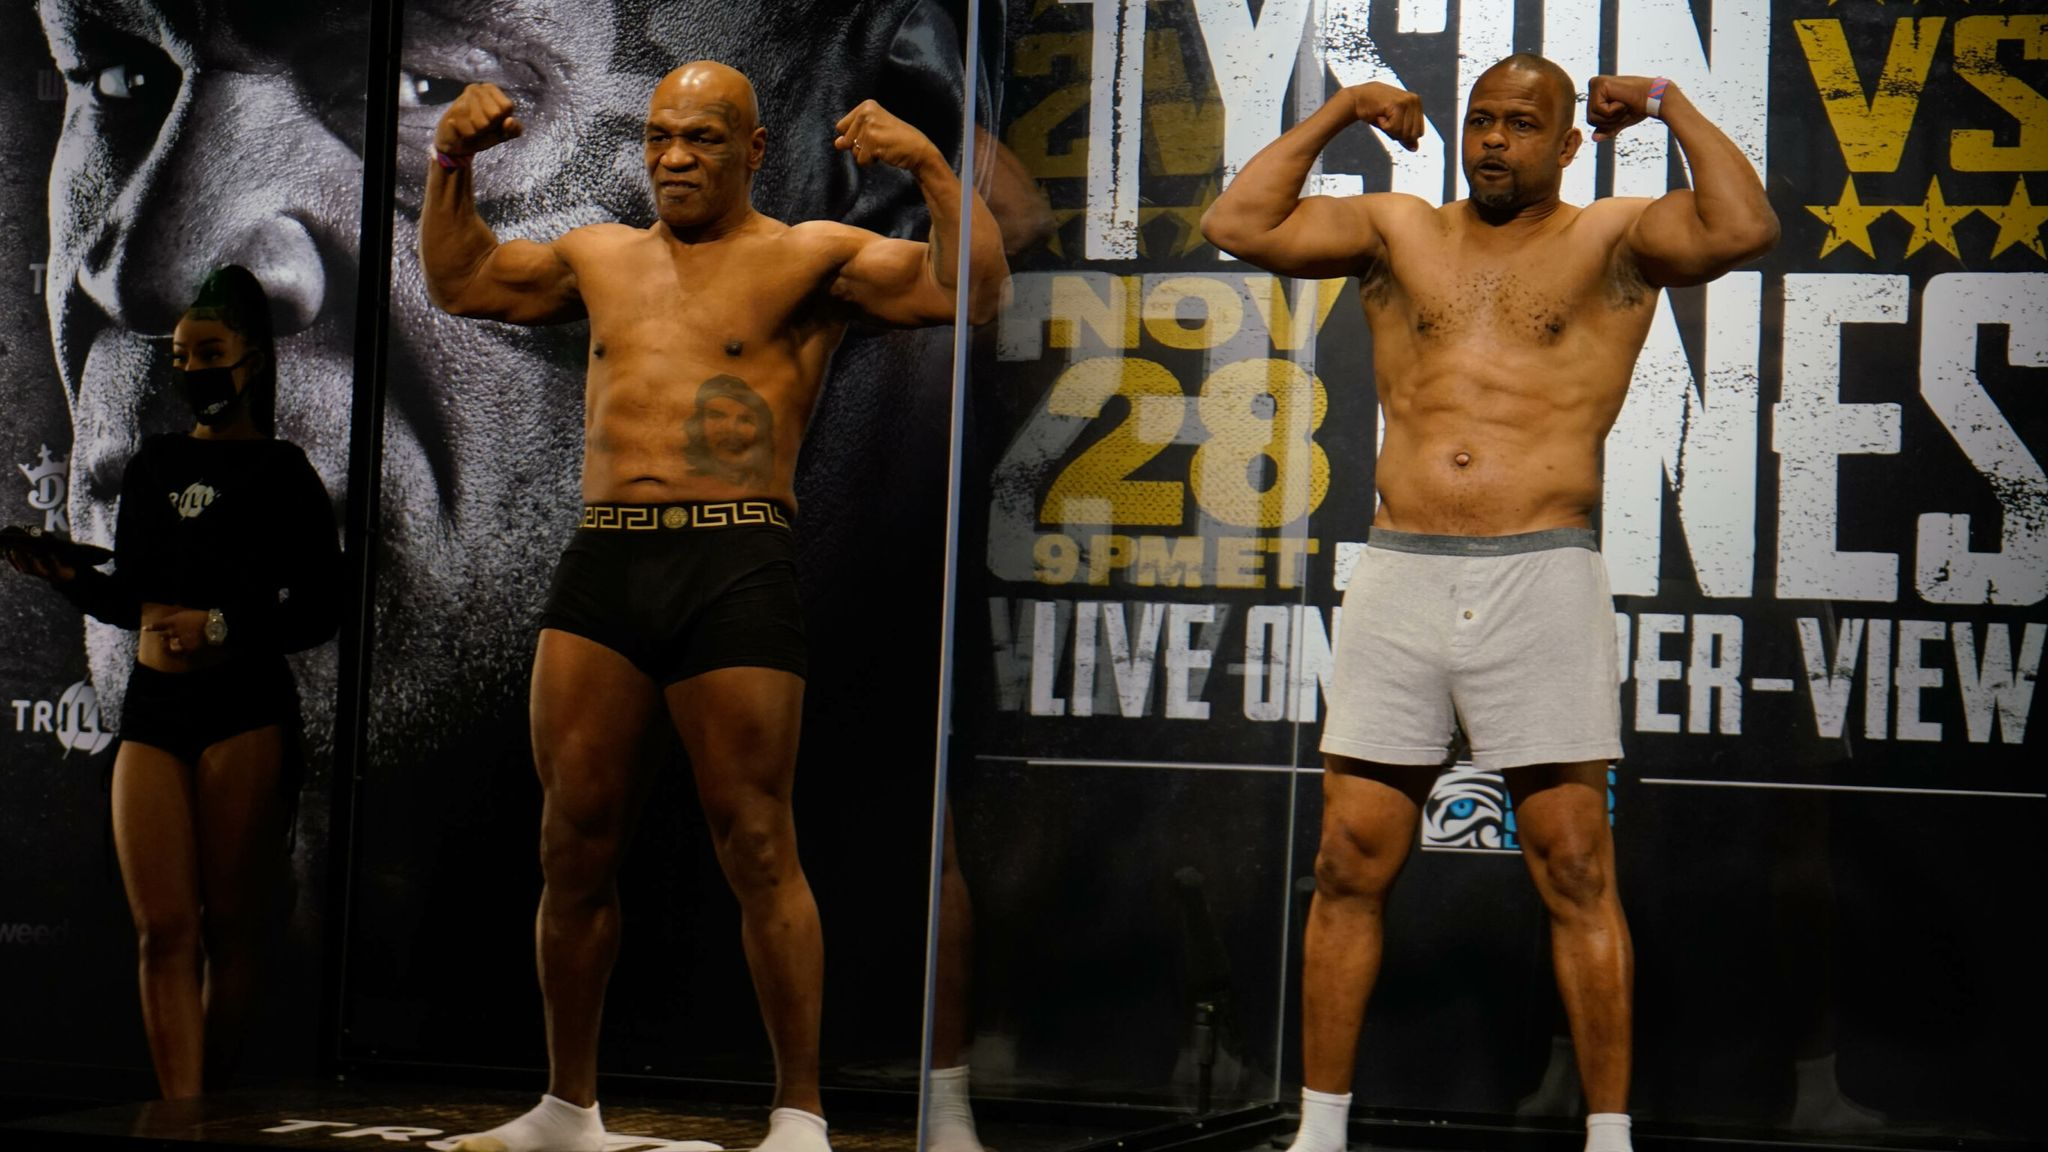 Mike Tyson squares up to Roy Jones Jr ahead of no-knockout bout in LA | Ents & Arts News | Sky News